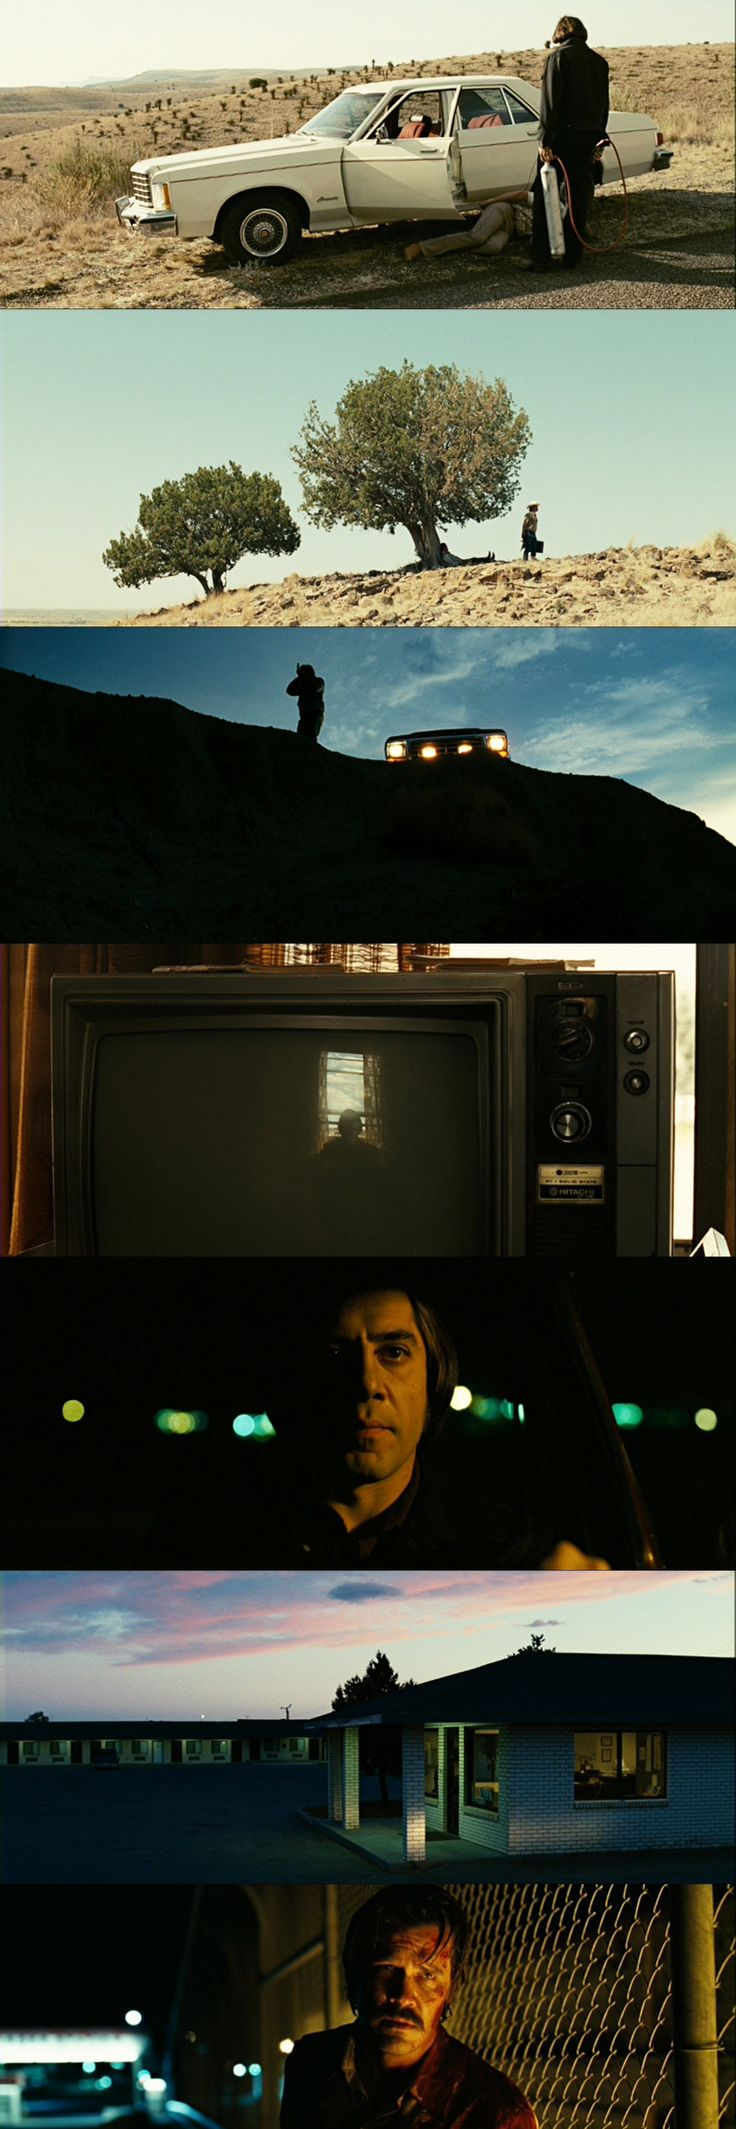 No Country For Old Men - Cinematography by Roger Deakins | Directed by Ethan Coen, Joel Coen. Javier Bardem relentless chilling killer ~ all compressor gun and haircut.